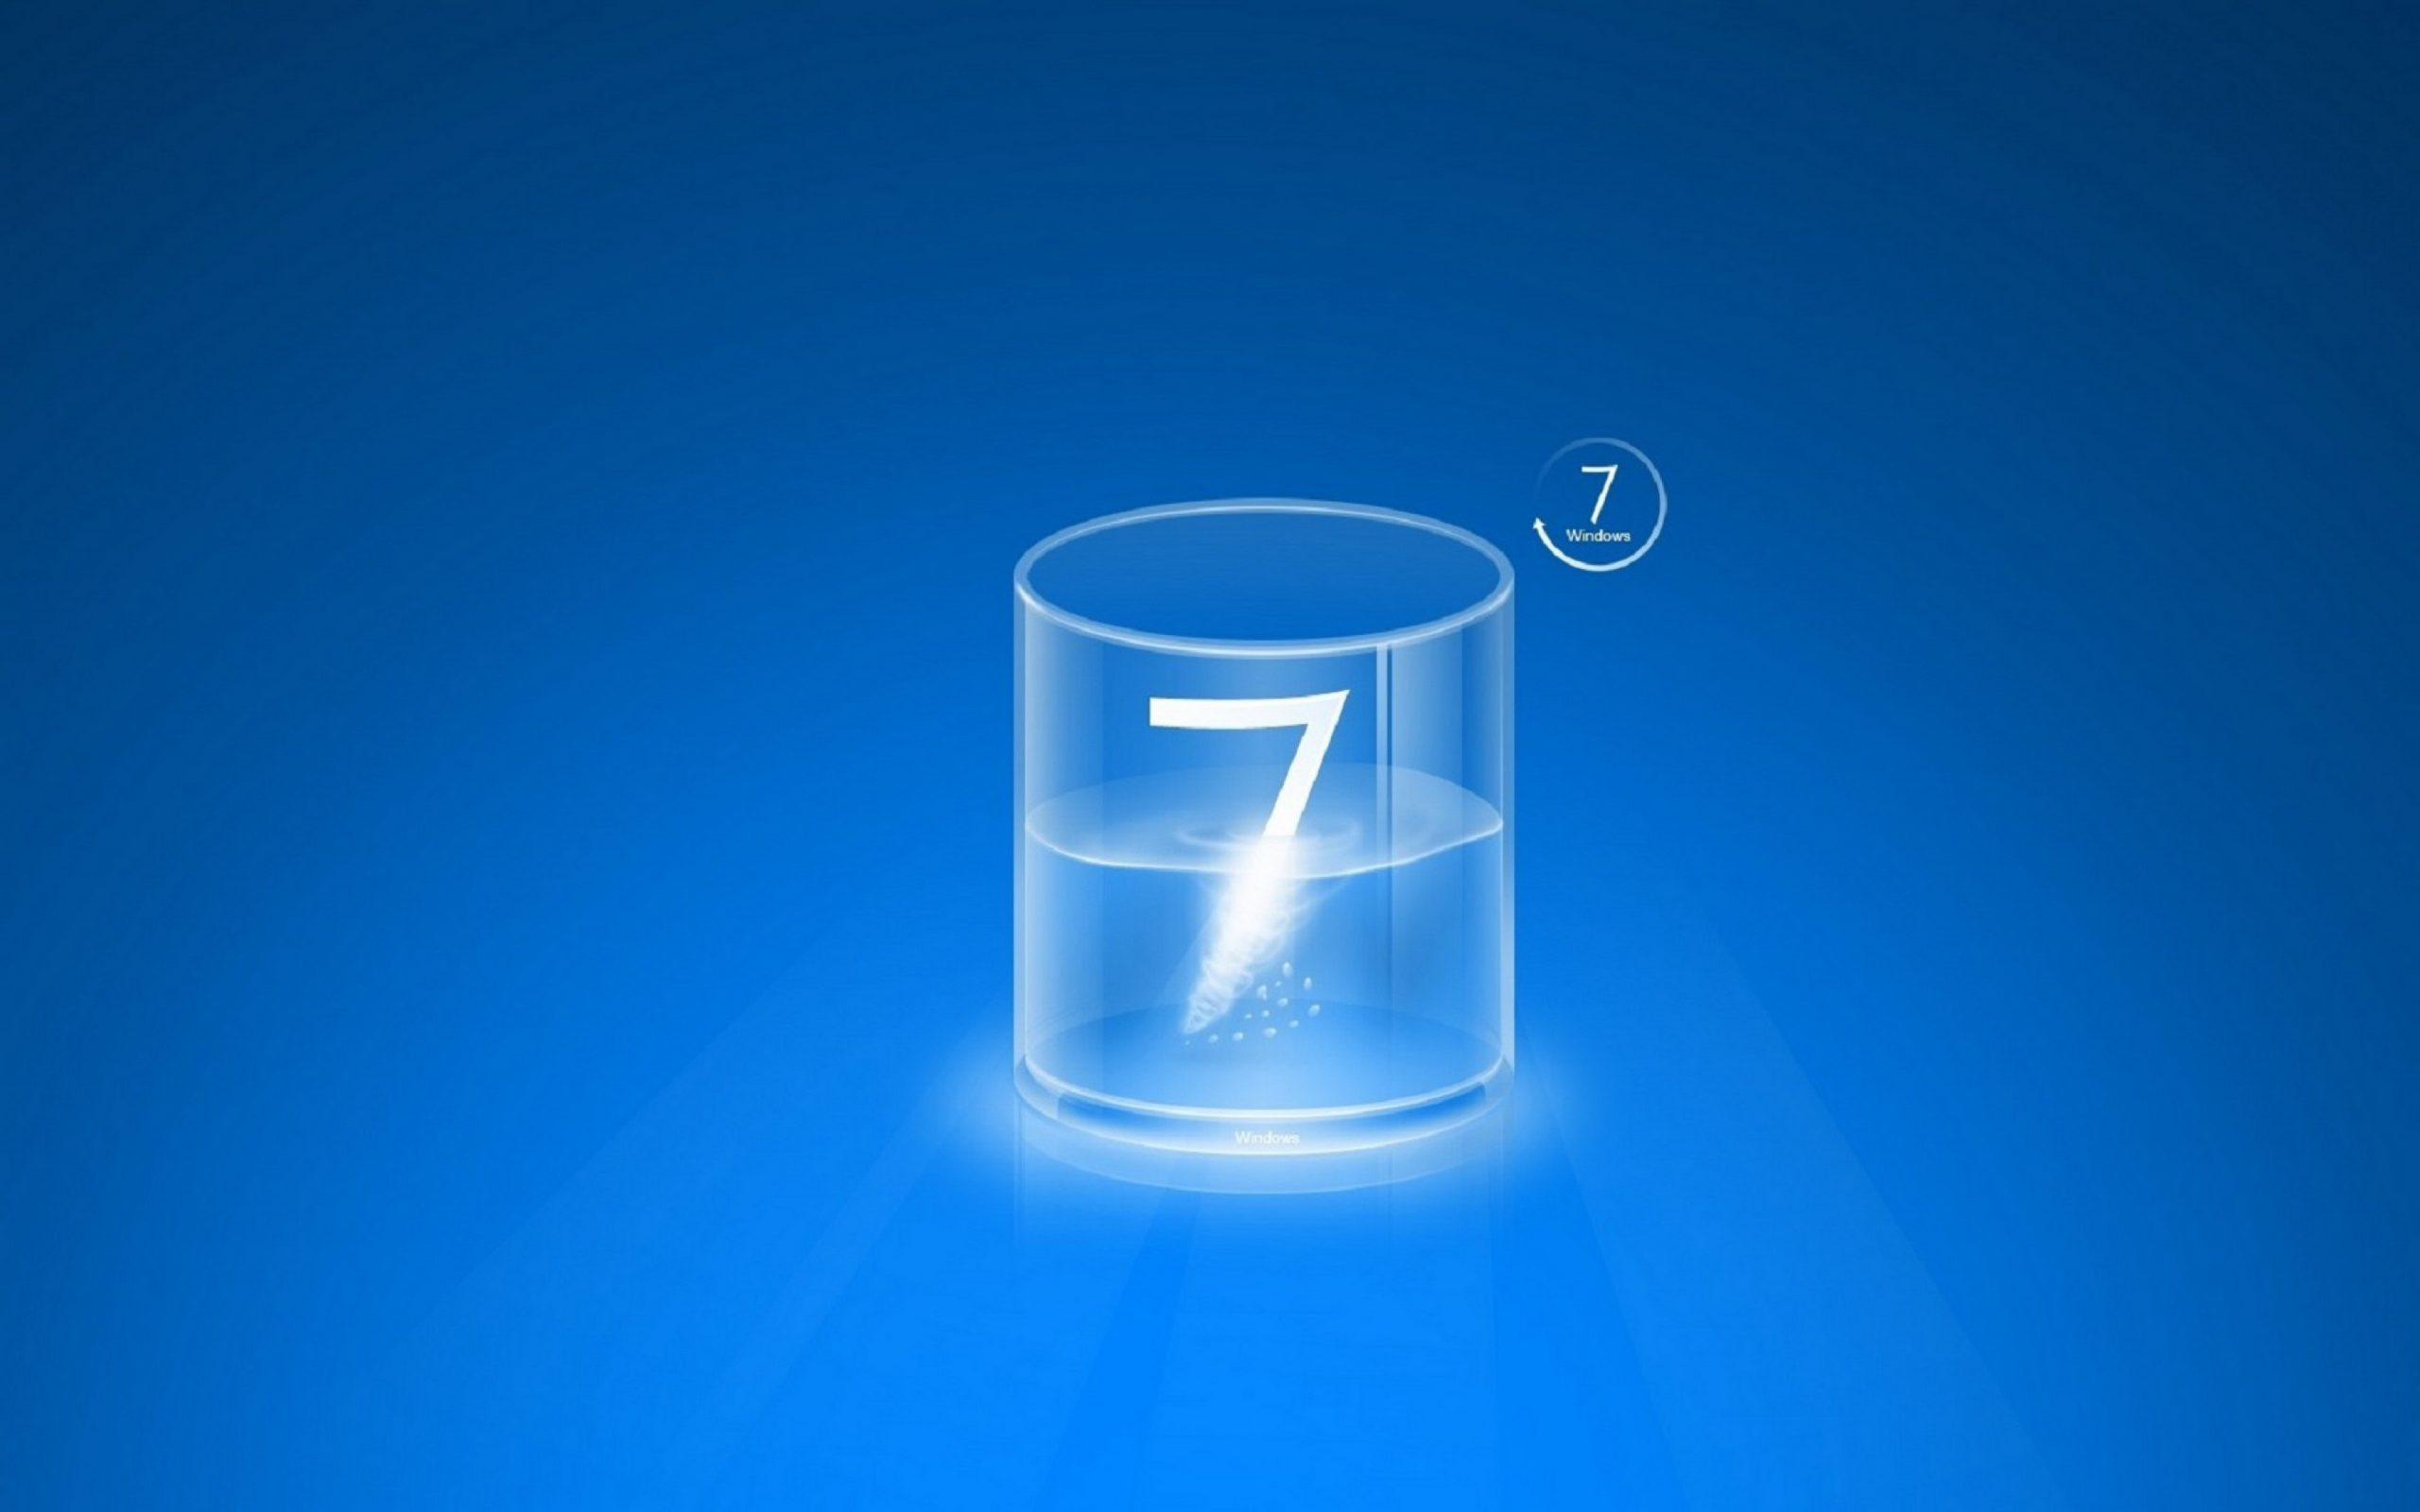 Windows 7 Wallpapers Backgrounds Hd 20